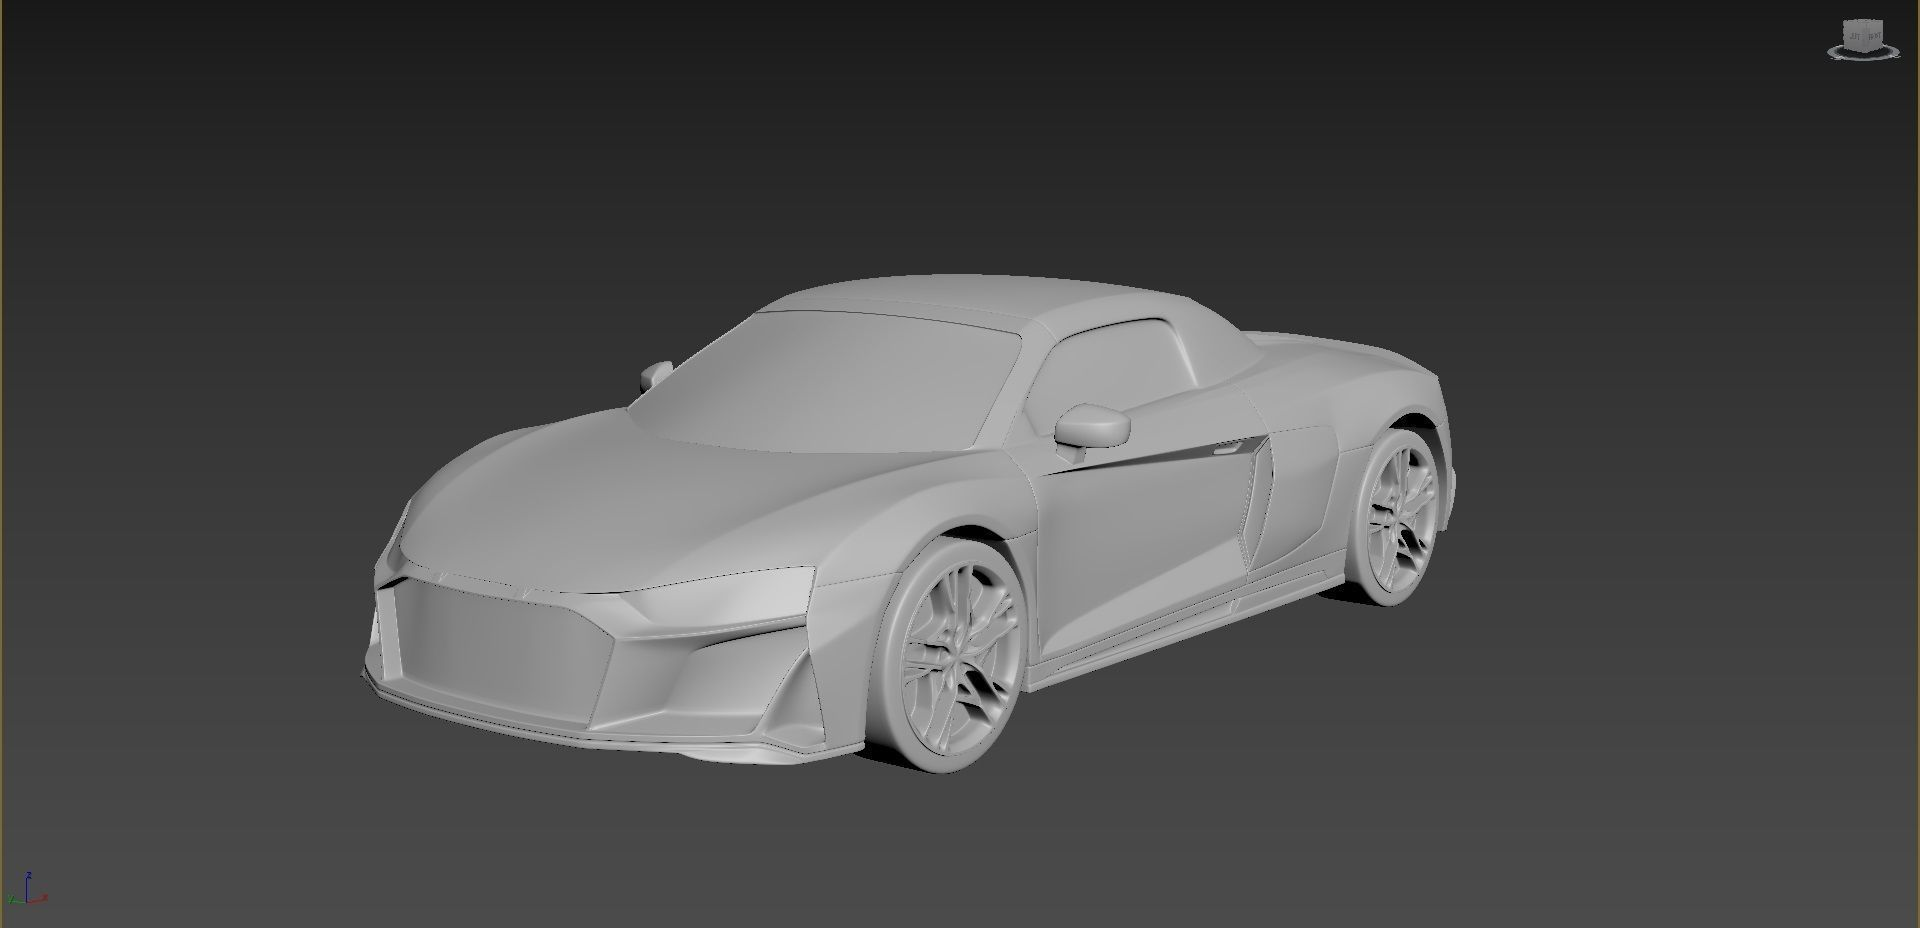 Audi R8 2020 on a small scale